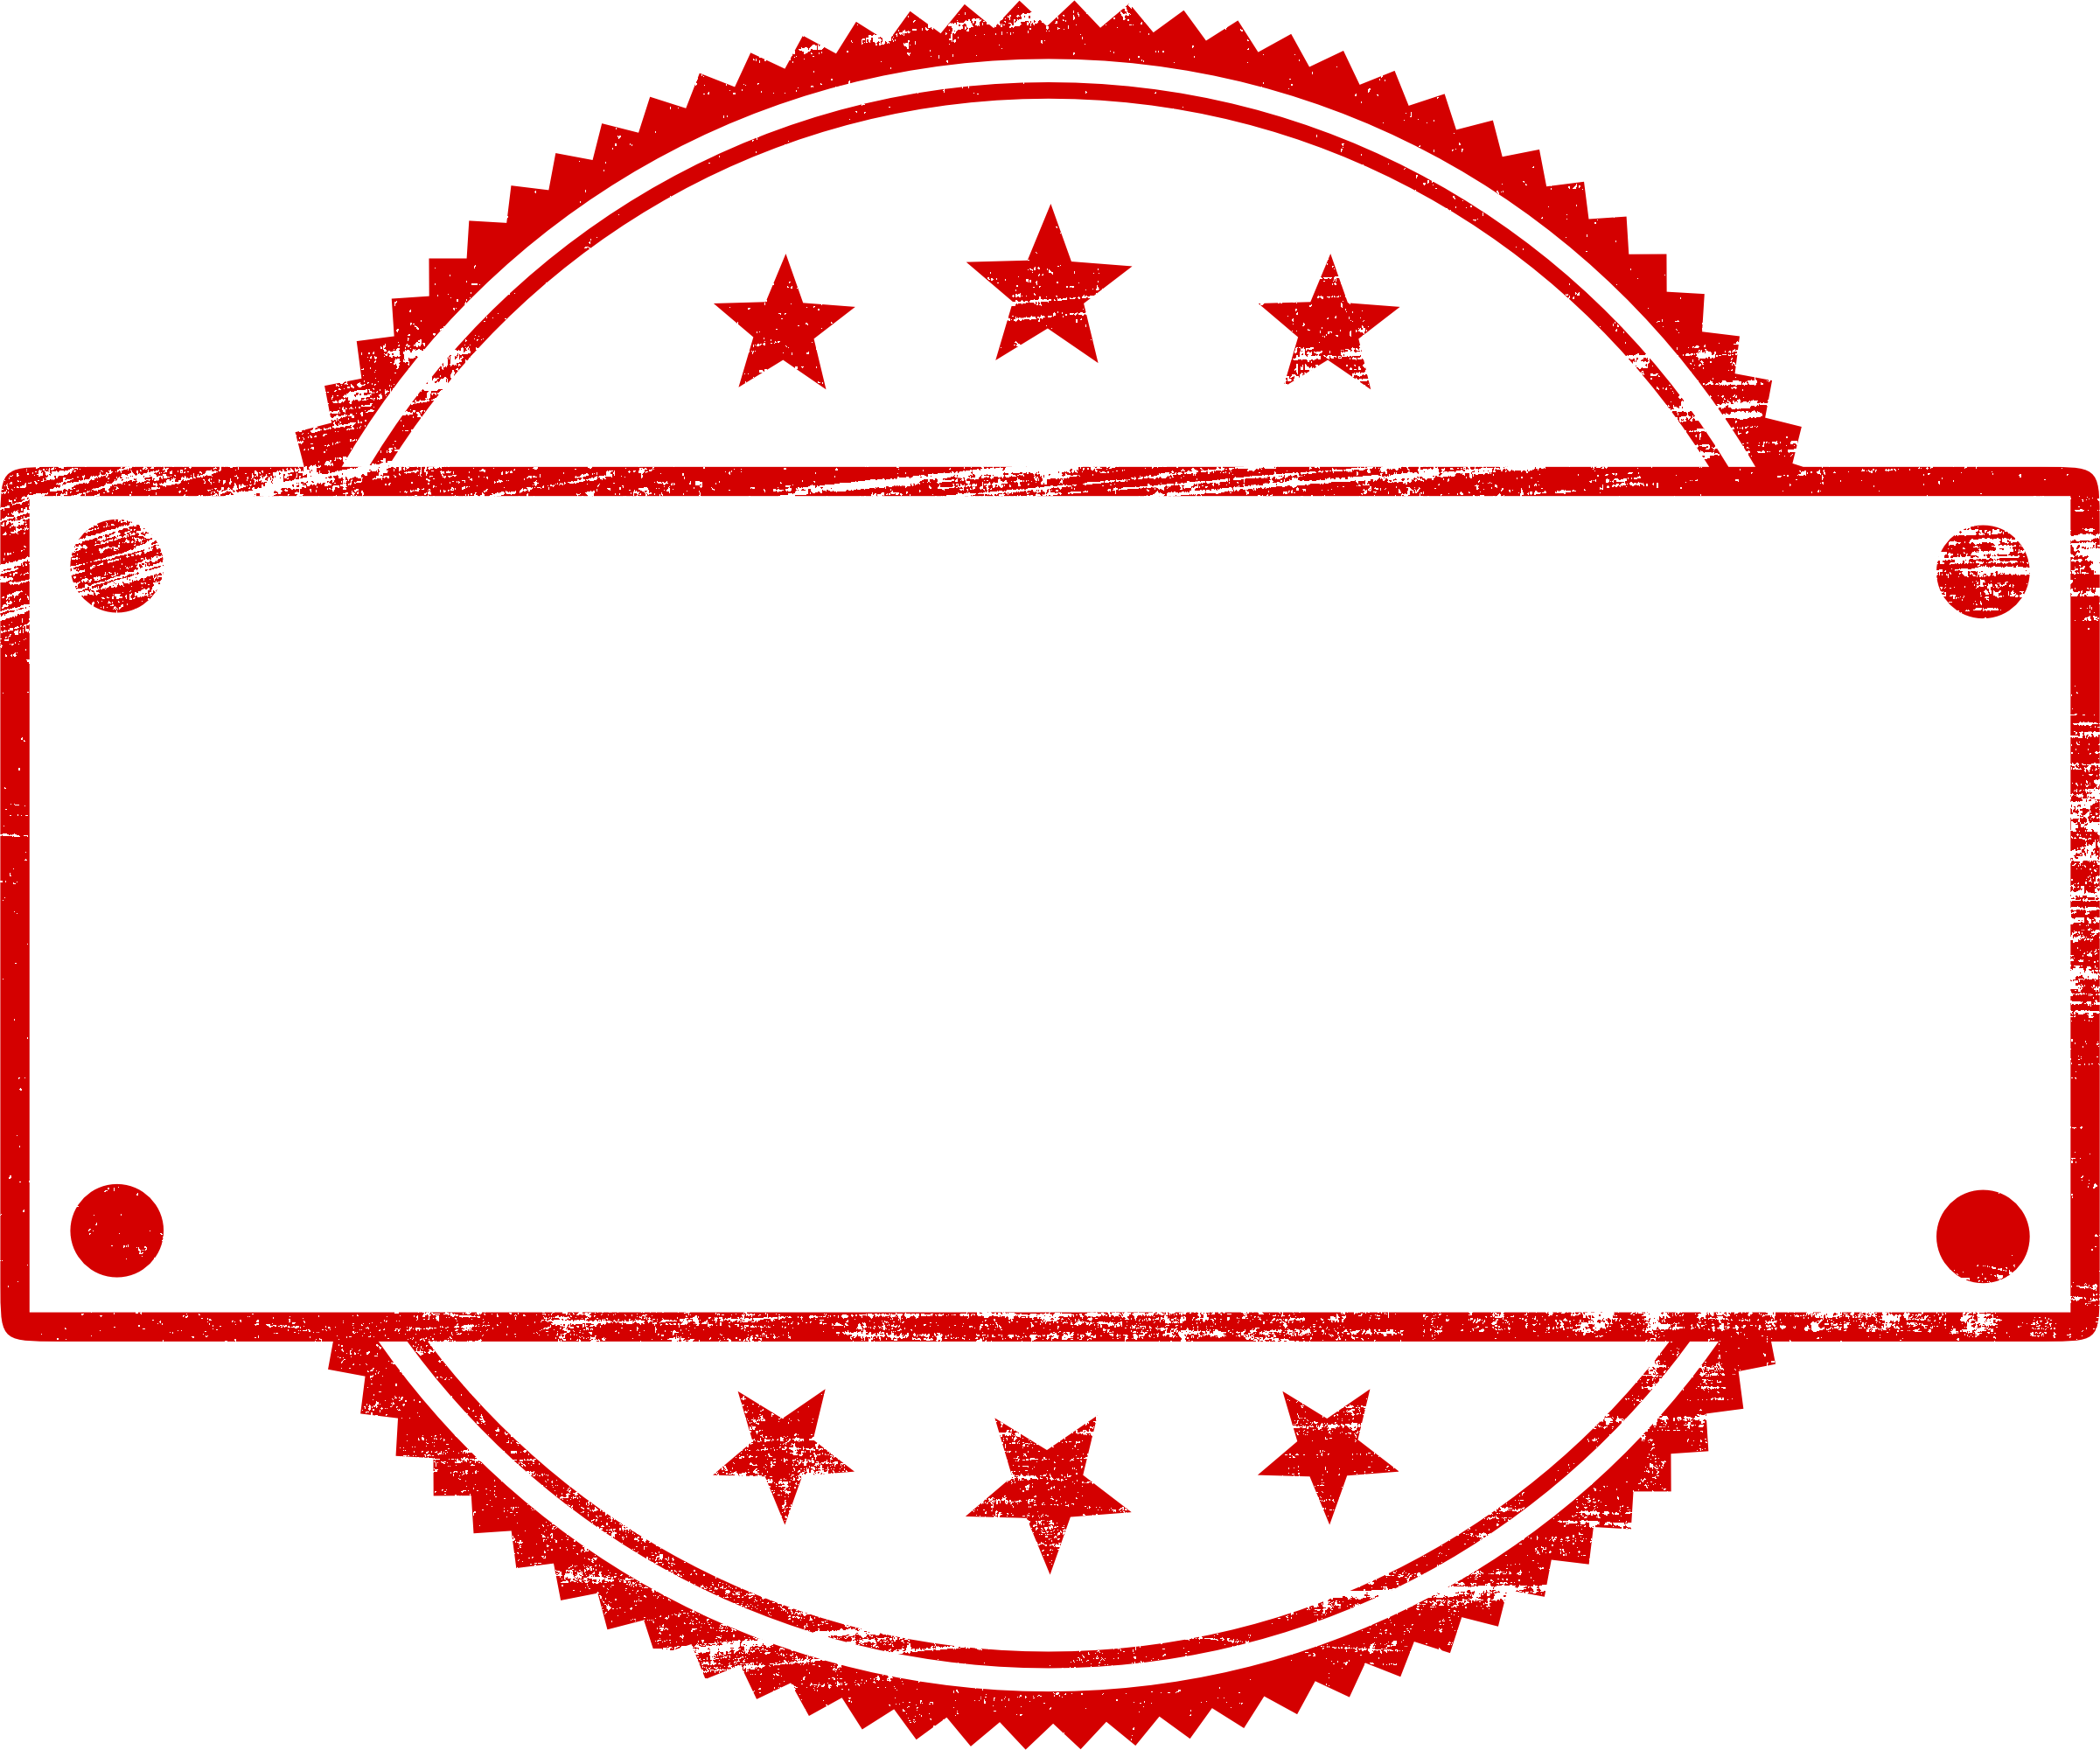 20 Red Empty Stamp Vector (PNG Transparent, SVG).